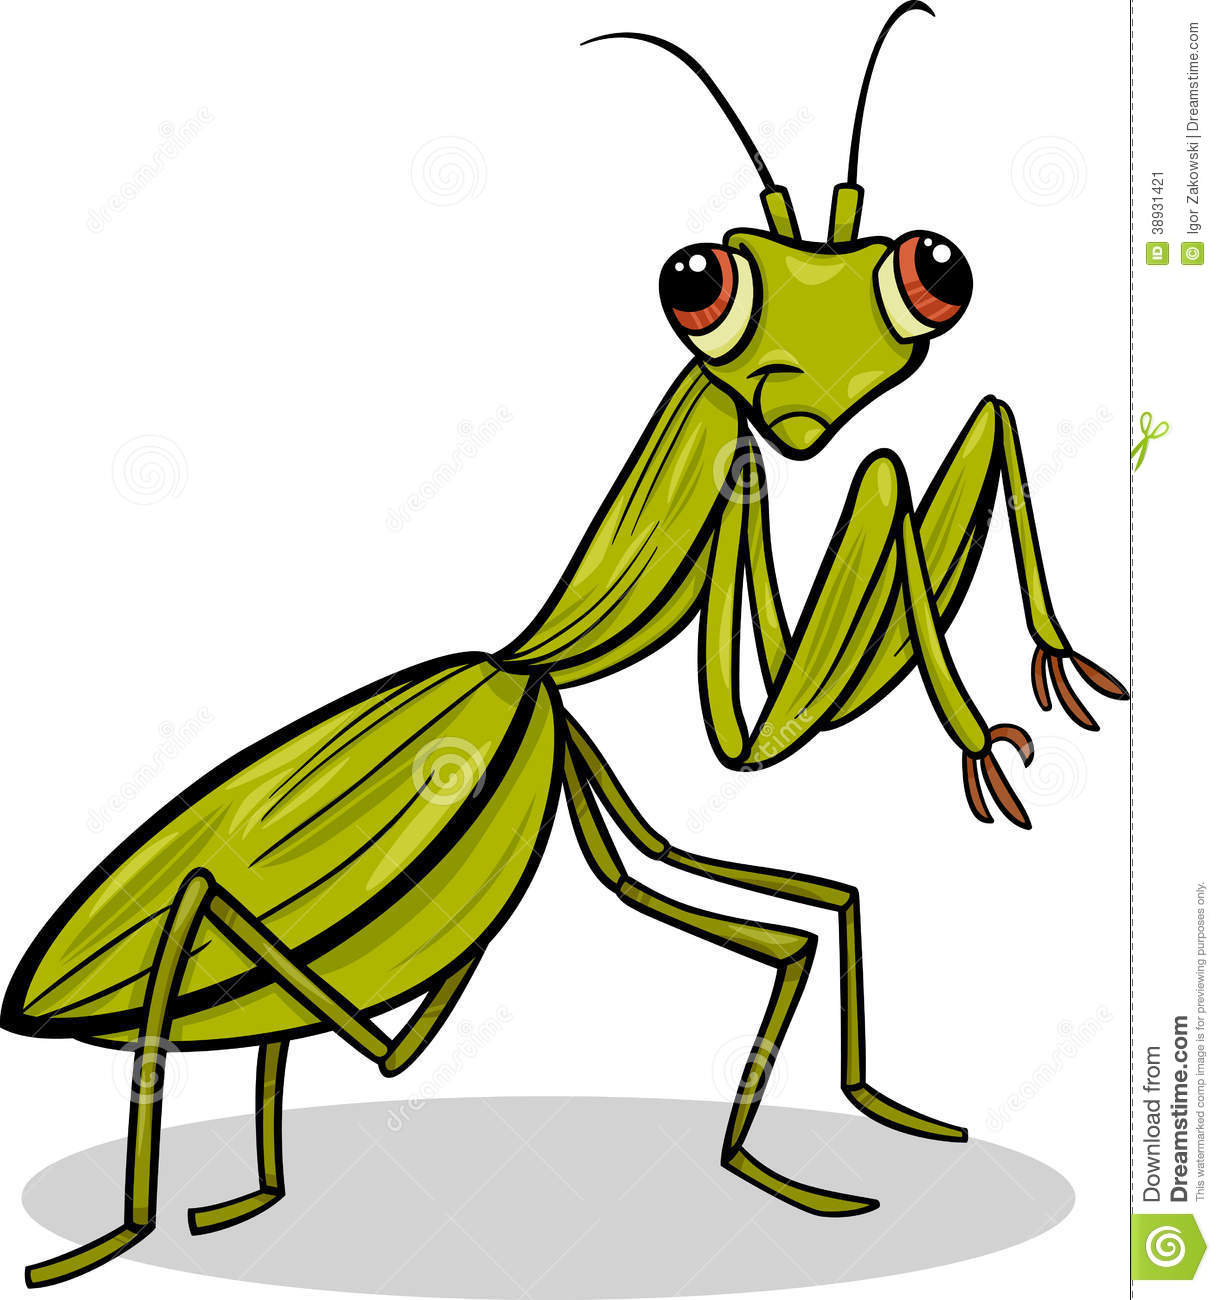 Mantis Insect Cartoon Illustration Stock Vector - Image: 38931421